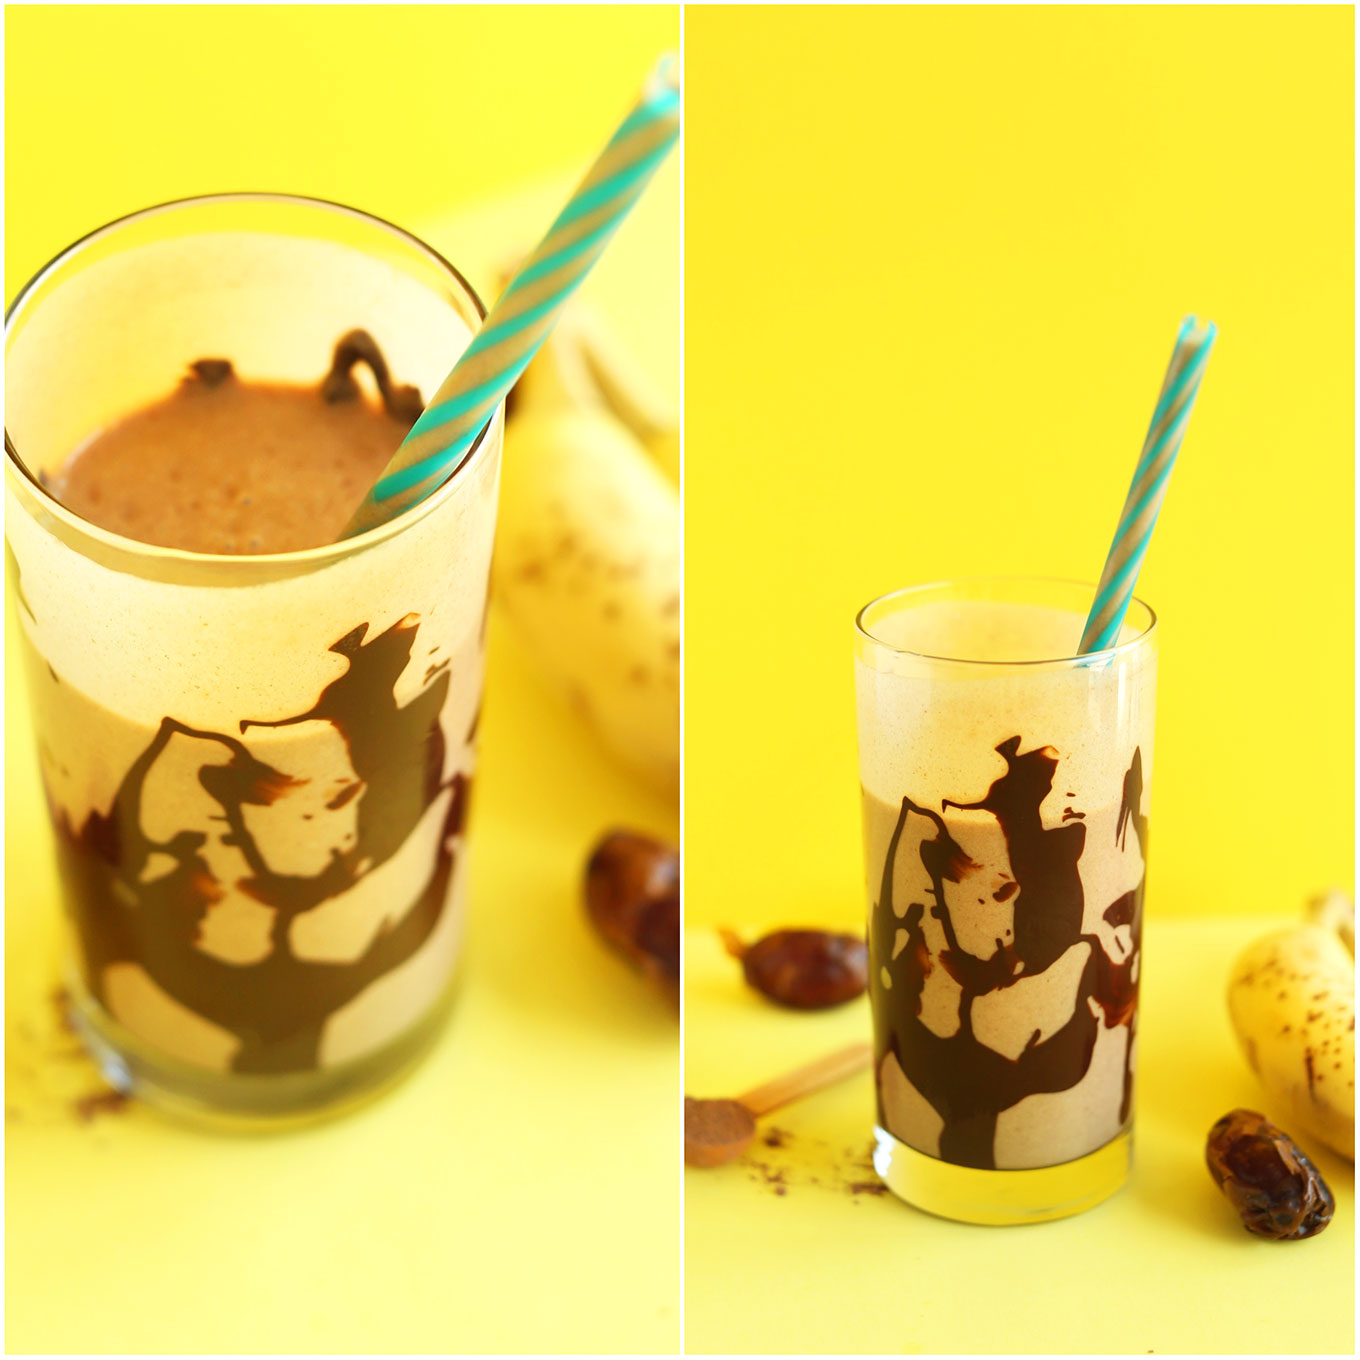 Glasses of our healthy Peanut Butter Banana Chocolate Shake for a gluten-free vegan treat